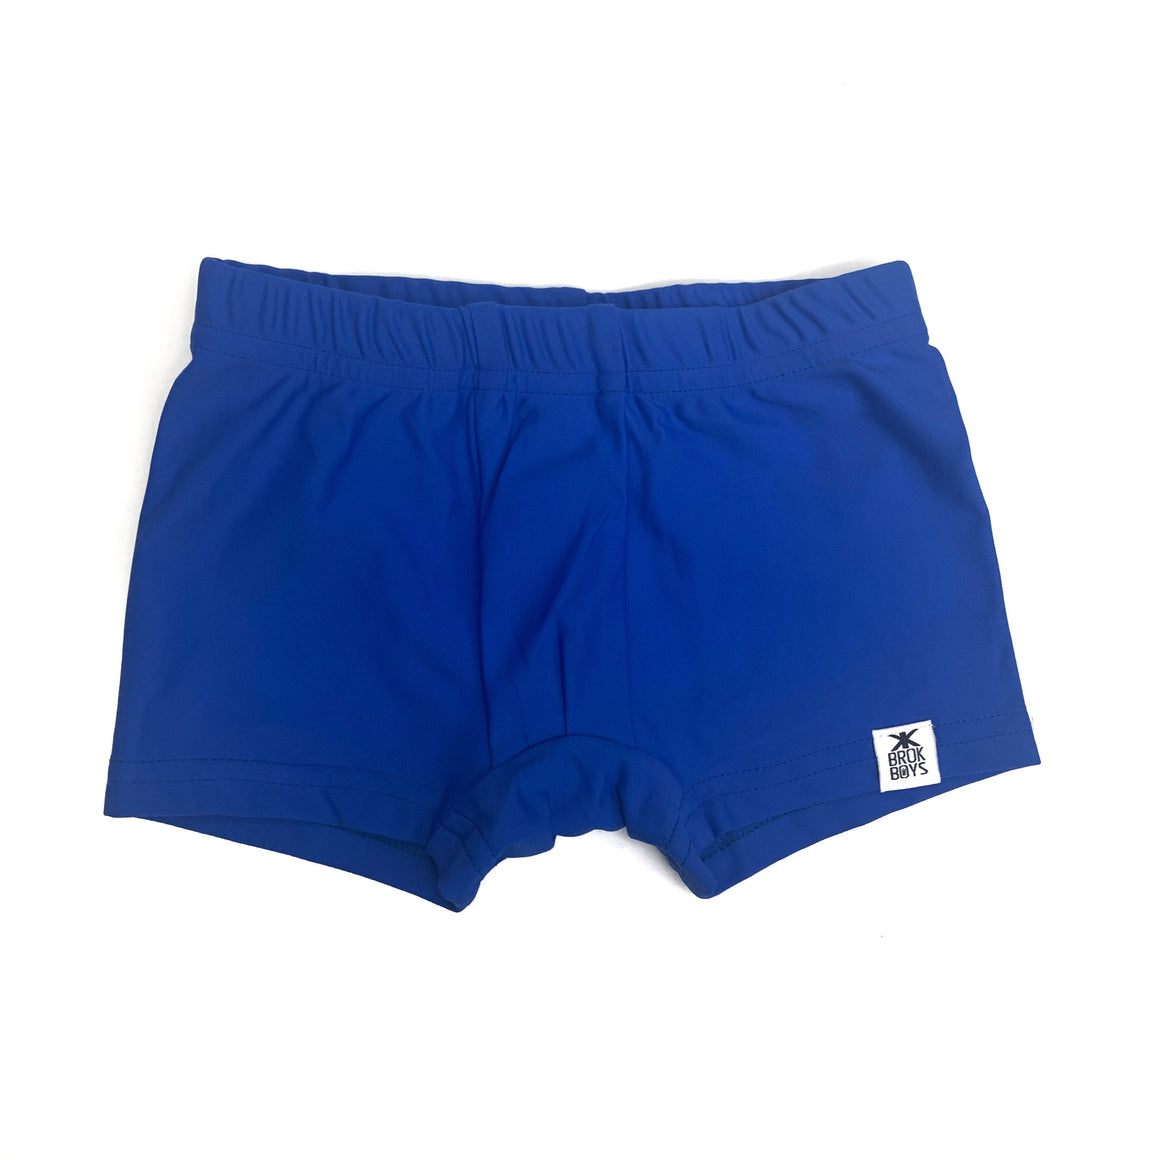 Electric Blue Shortie Swimmers